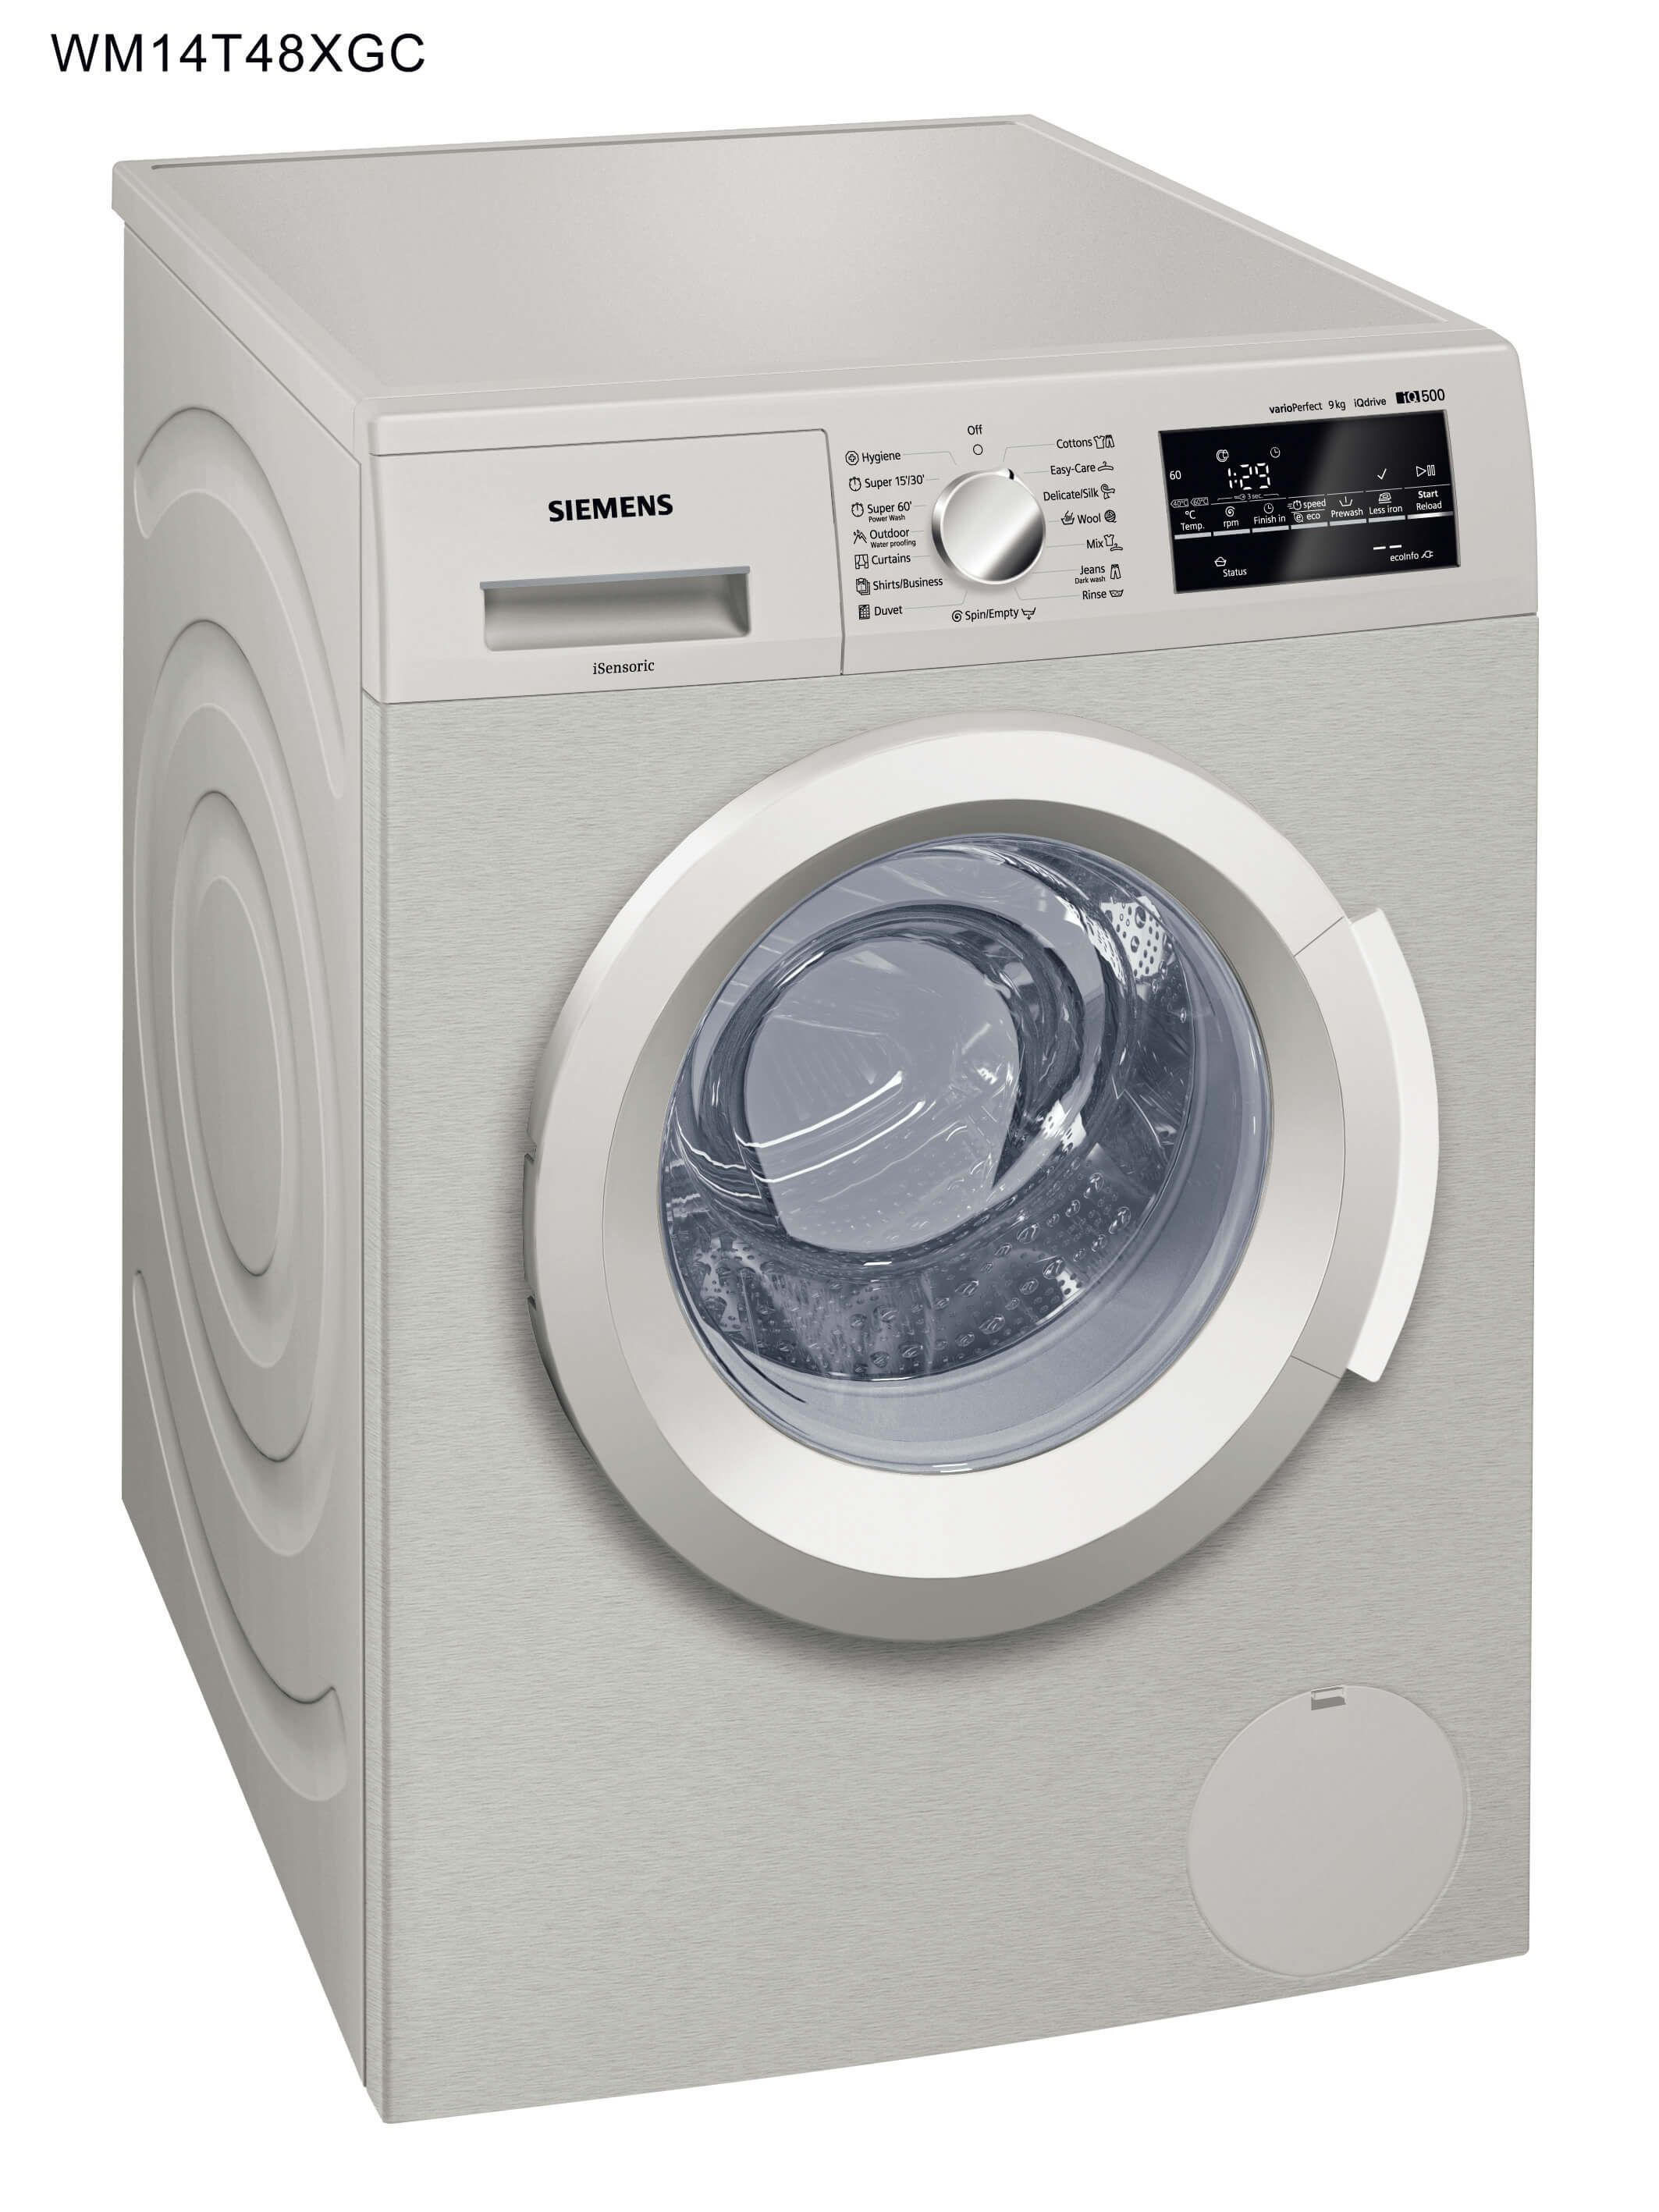 Siemens - 9 Kg Washing Machine, WM14T48XGC